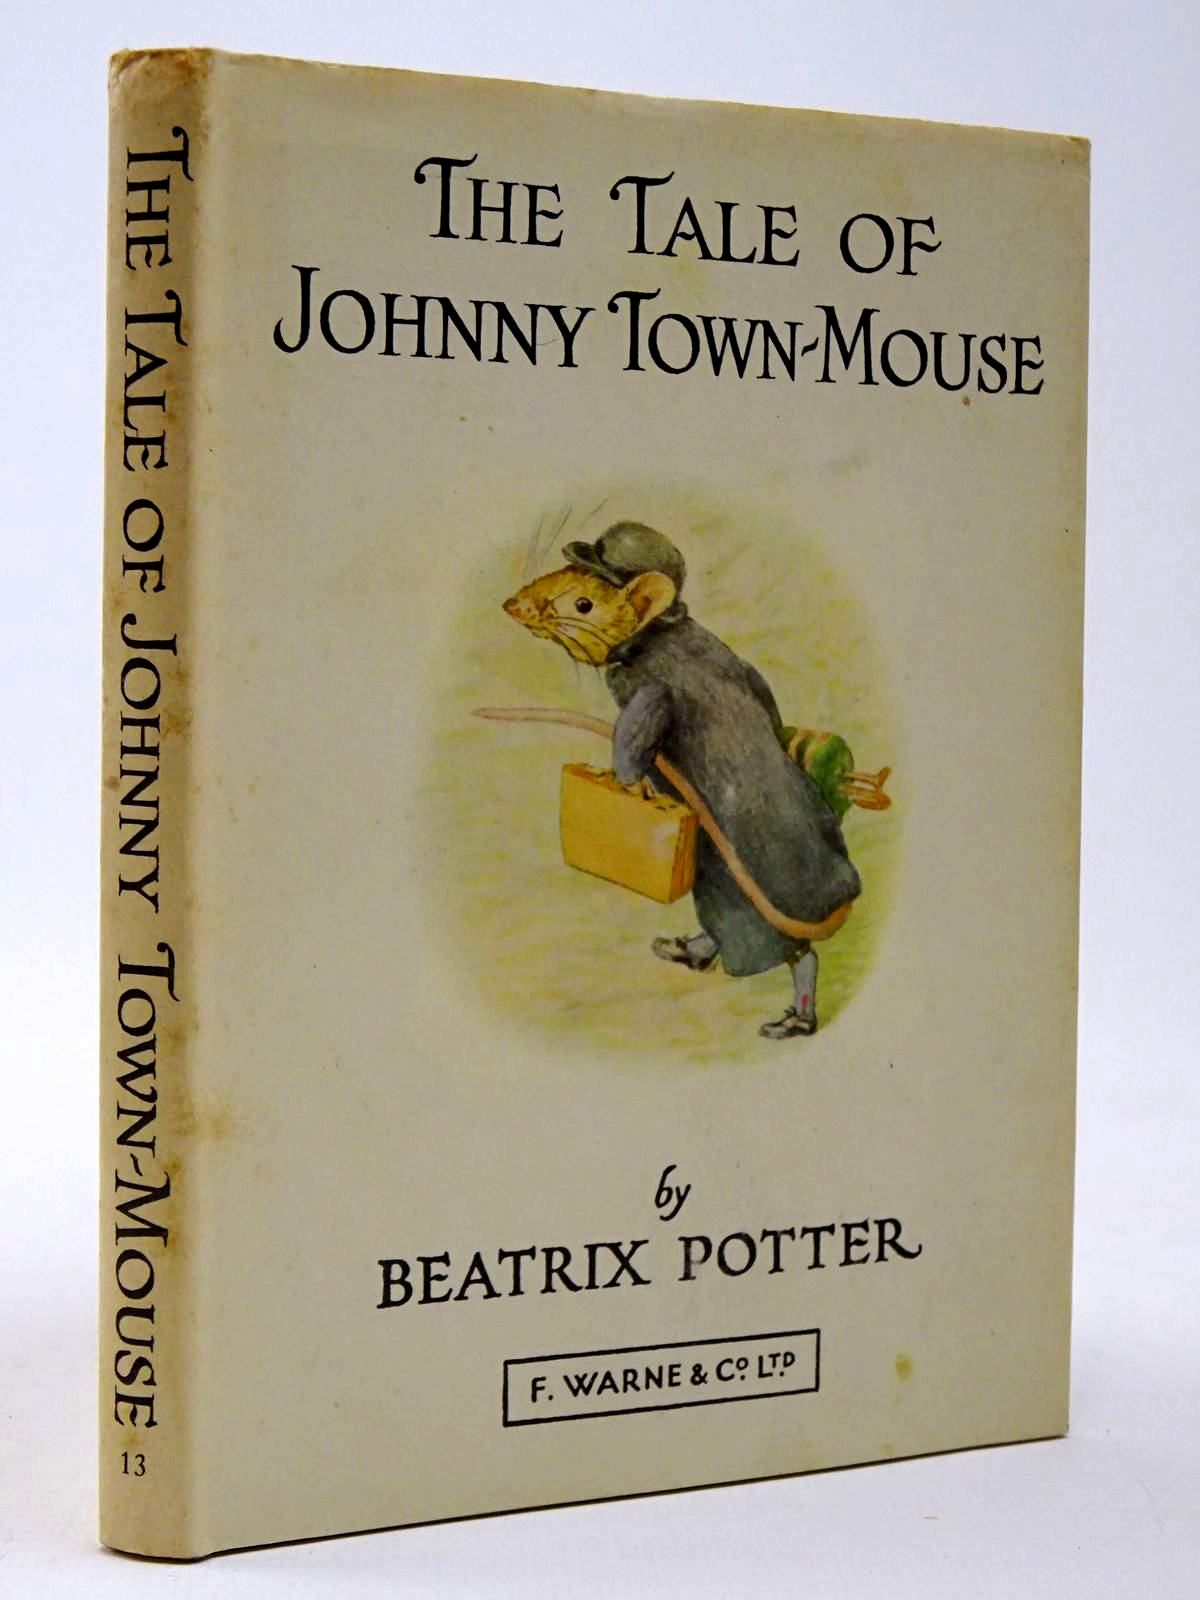 Photo of THE TALE OF JOHNNY TOWN-MOUSE written by Potter, Beatrix illustrated by Potter, Beatrix published by Frederick Warne & Co Ltd. (STOCK CODE: 2129992)  for sale by Stella & Rose's Books